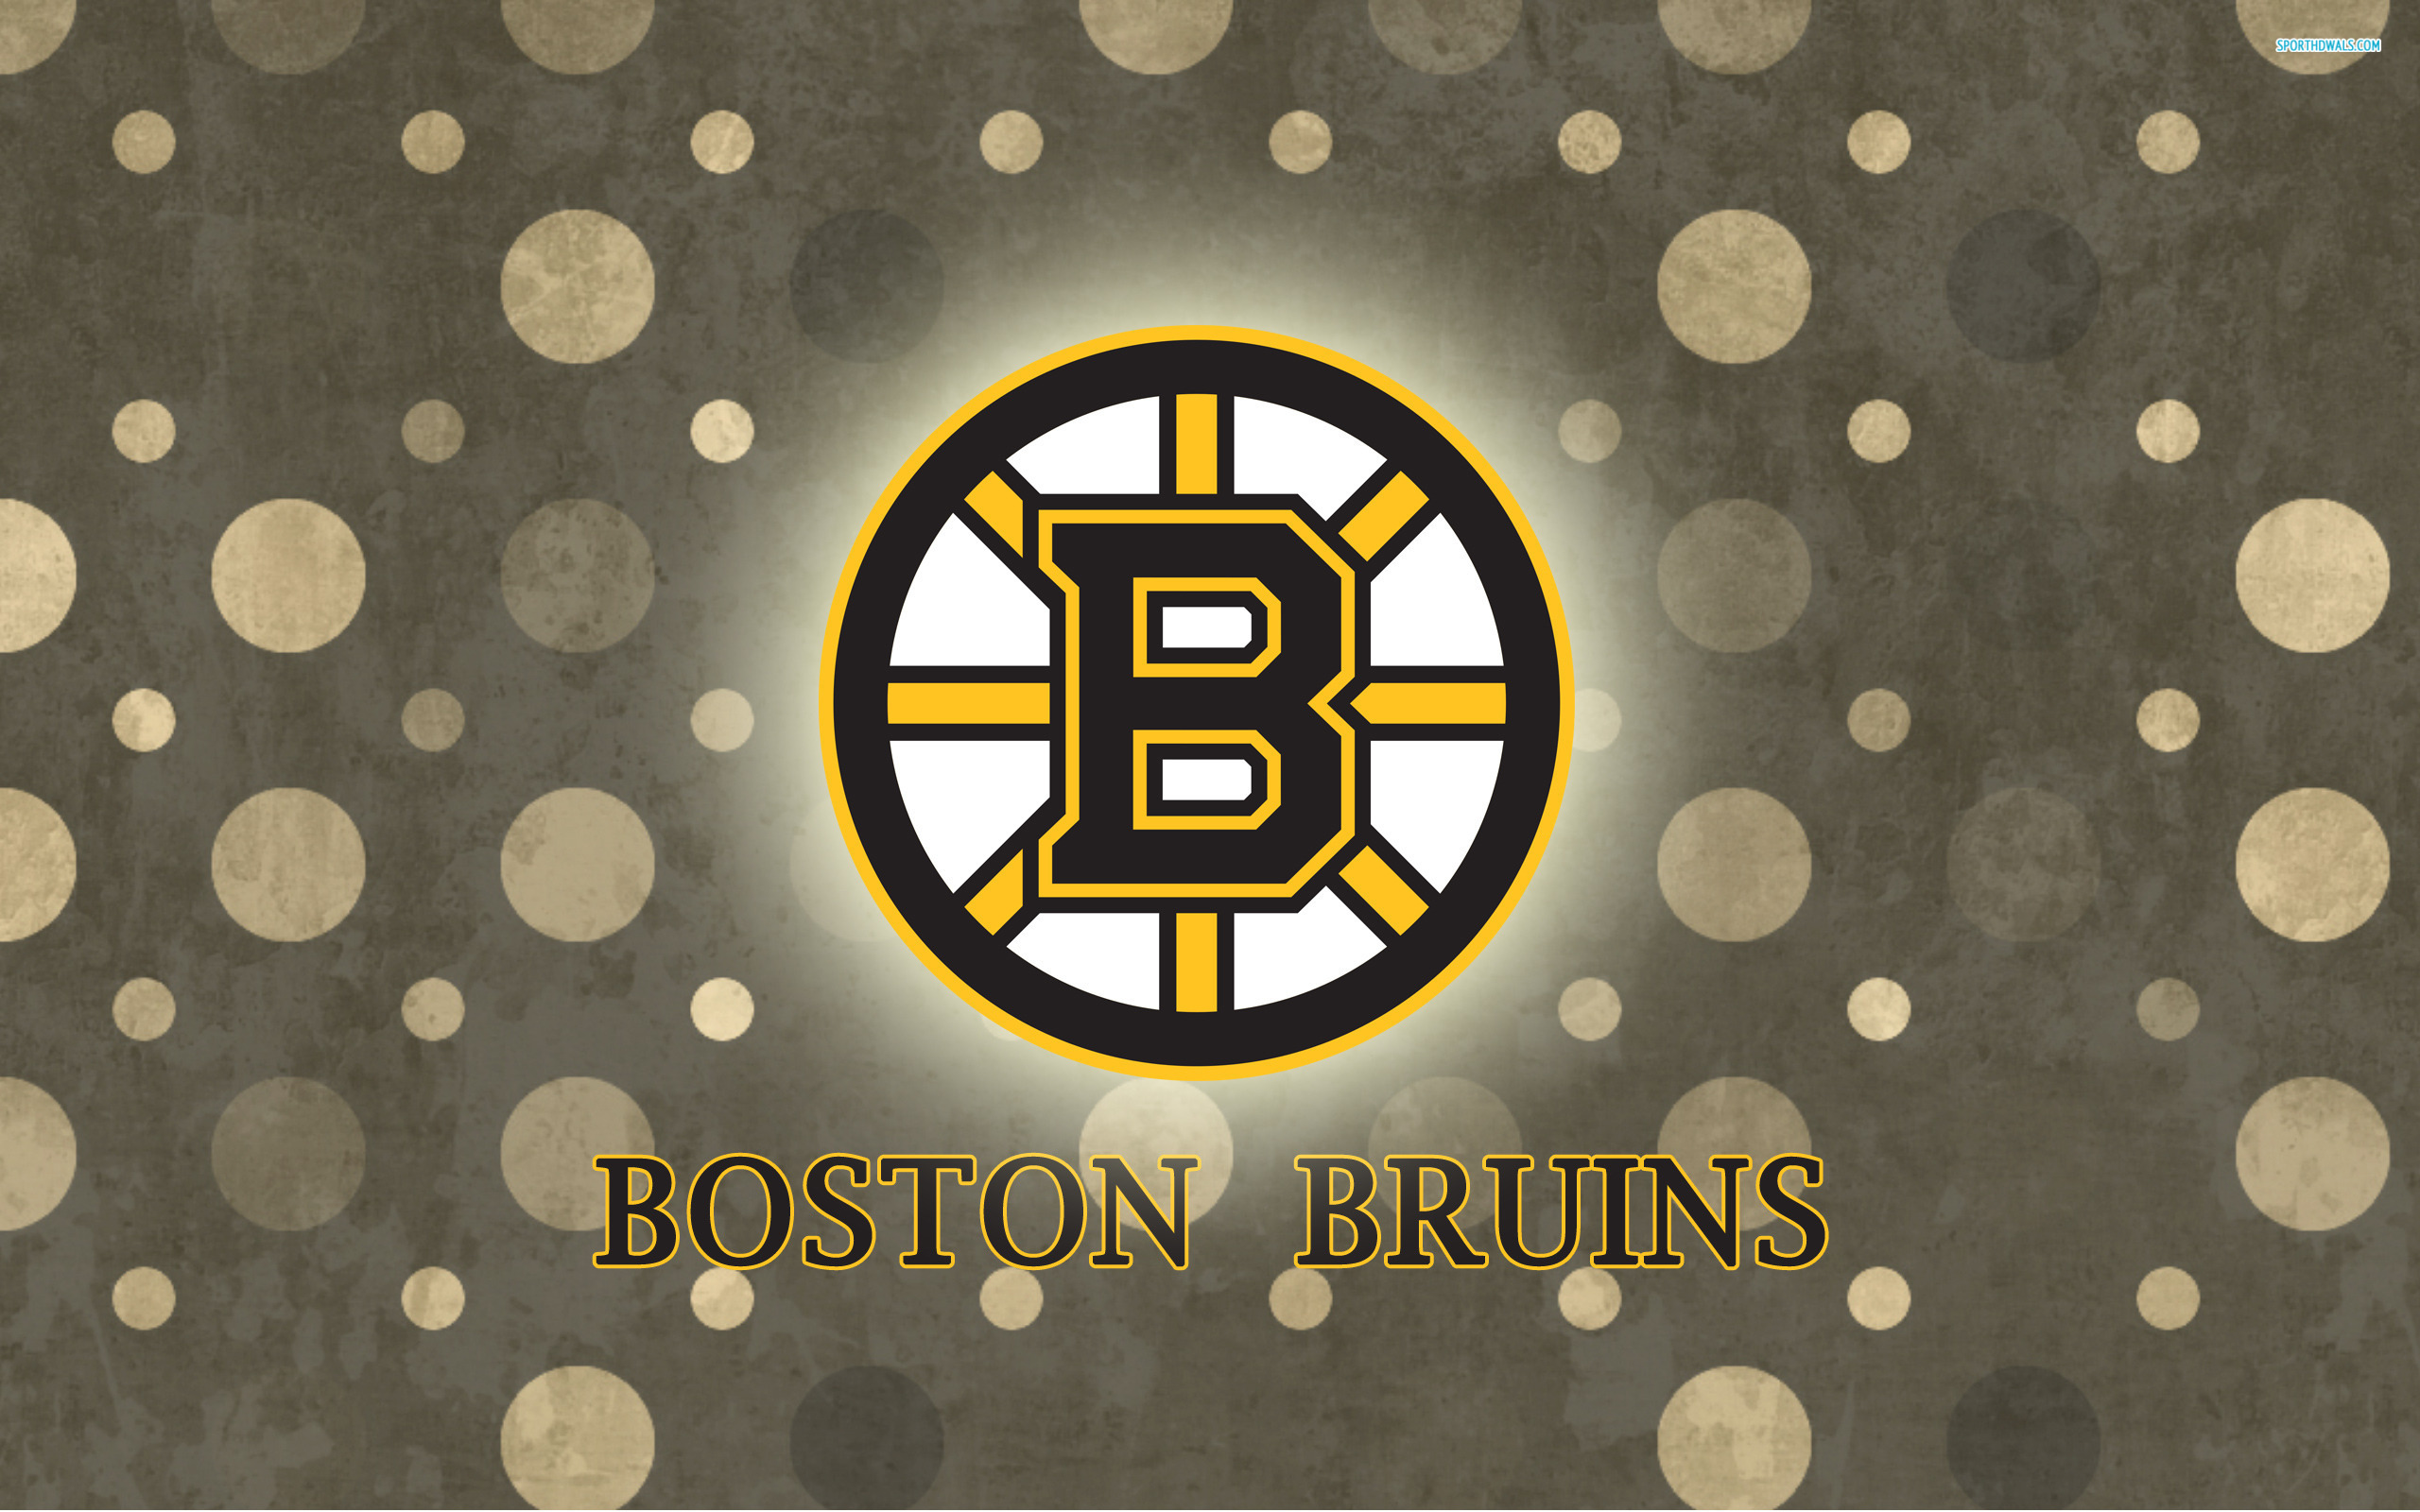 If you are looking for Boston Bruins images, today is your lucky day!! :D